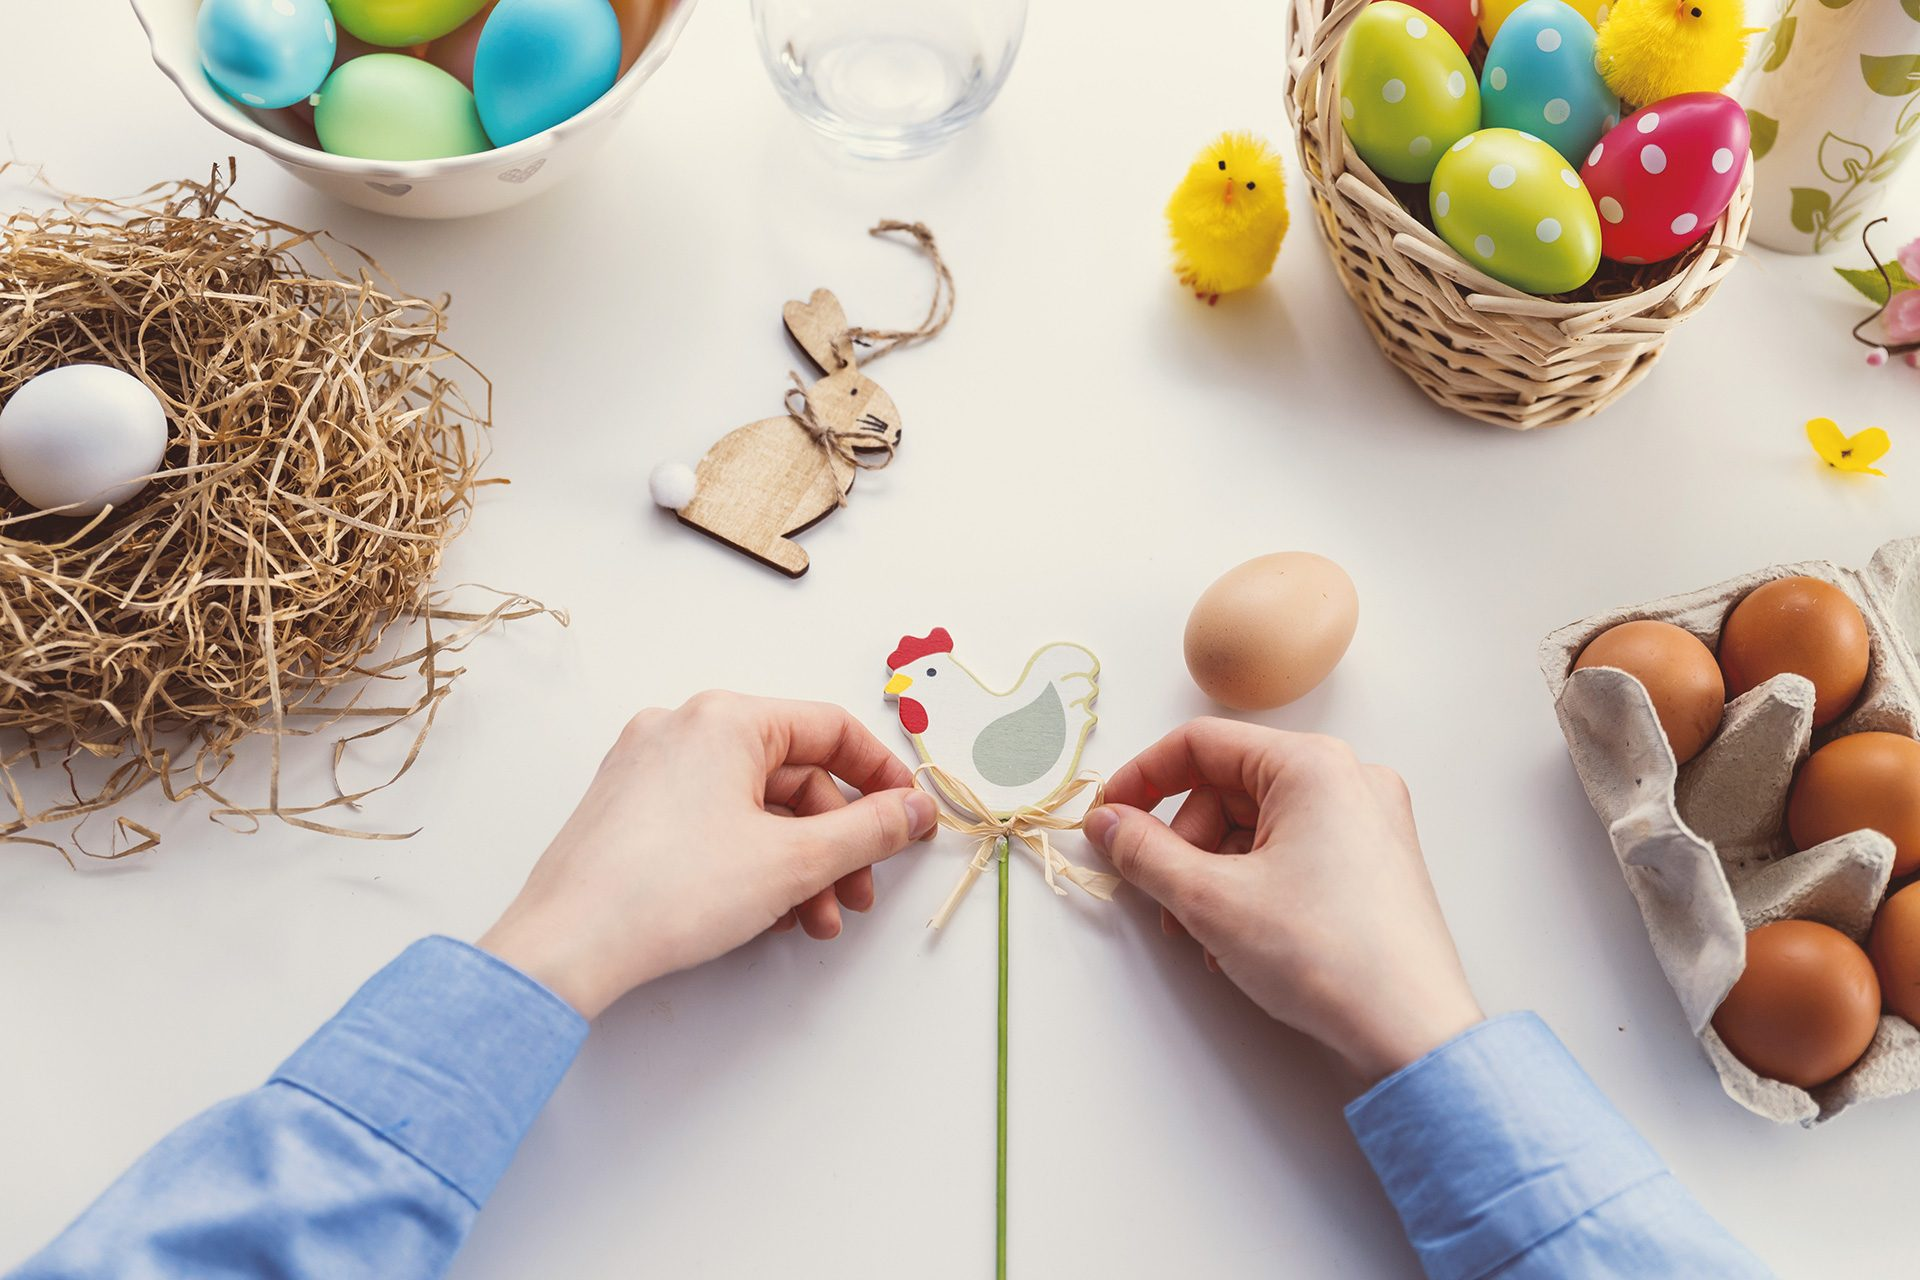 DIY Handmade Easter Egg